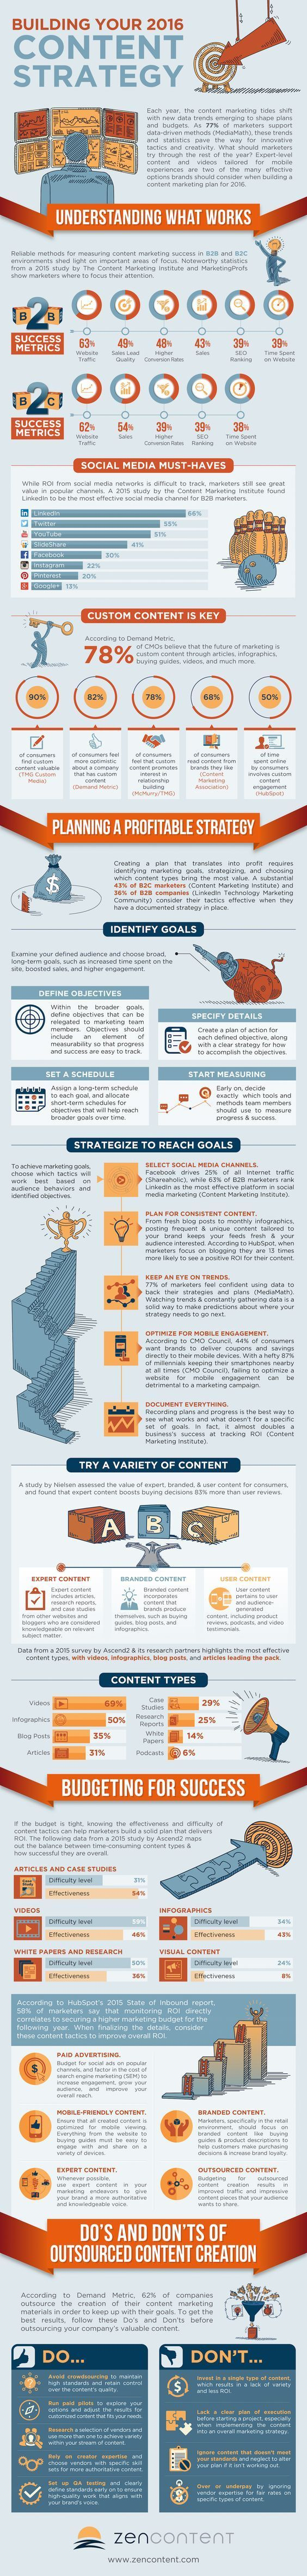 Building Your 2016 Content Strategy [Infographic] - Content Marketing | Social Media | Digital Marketing